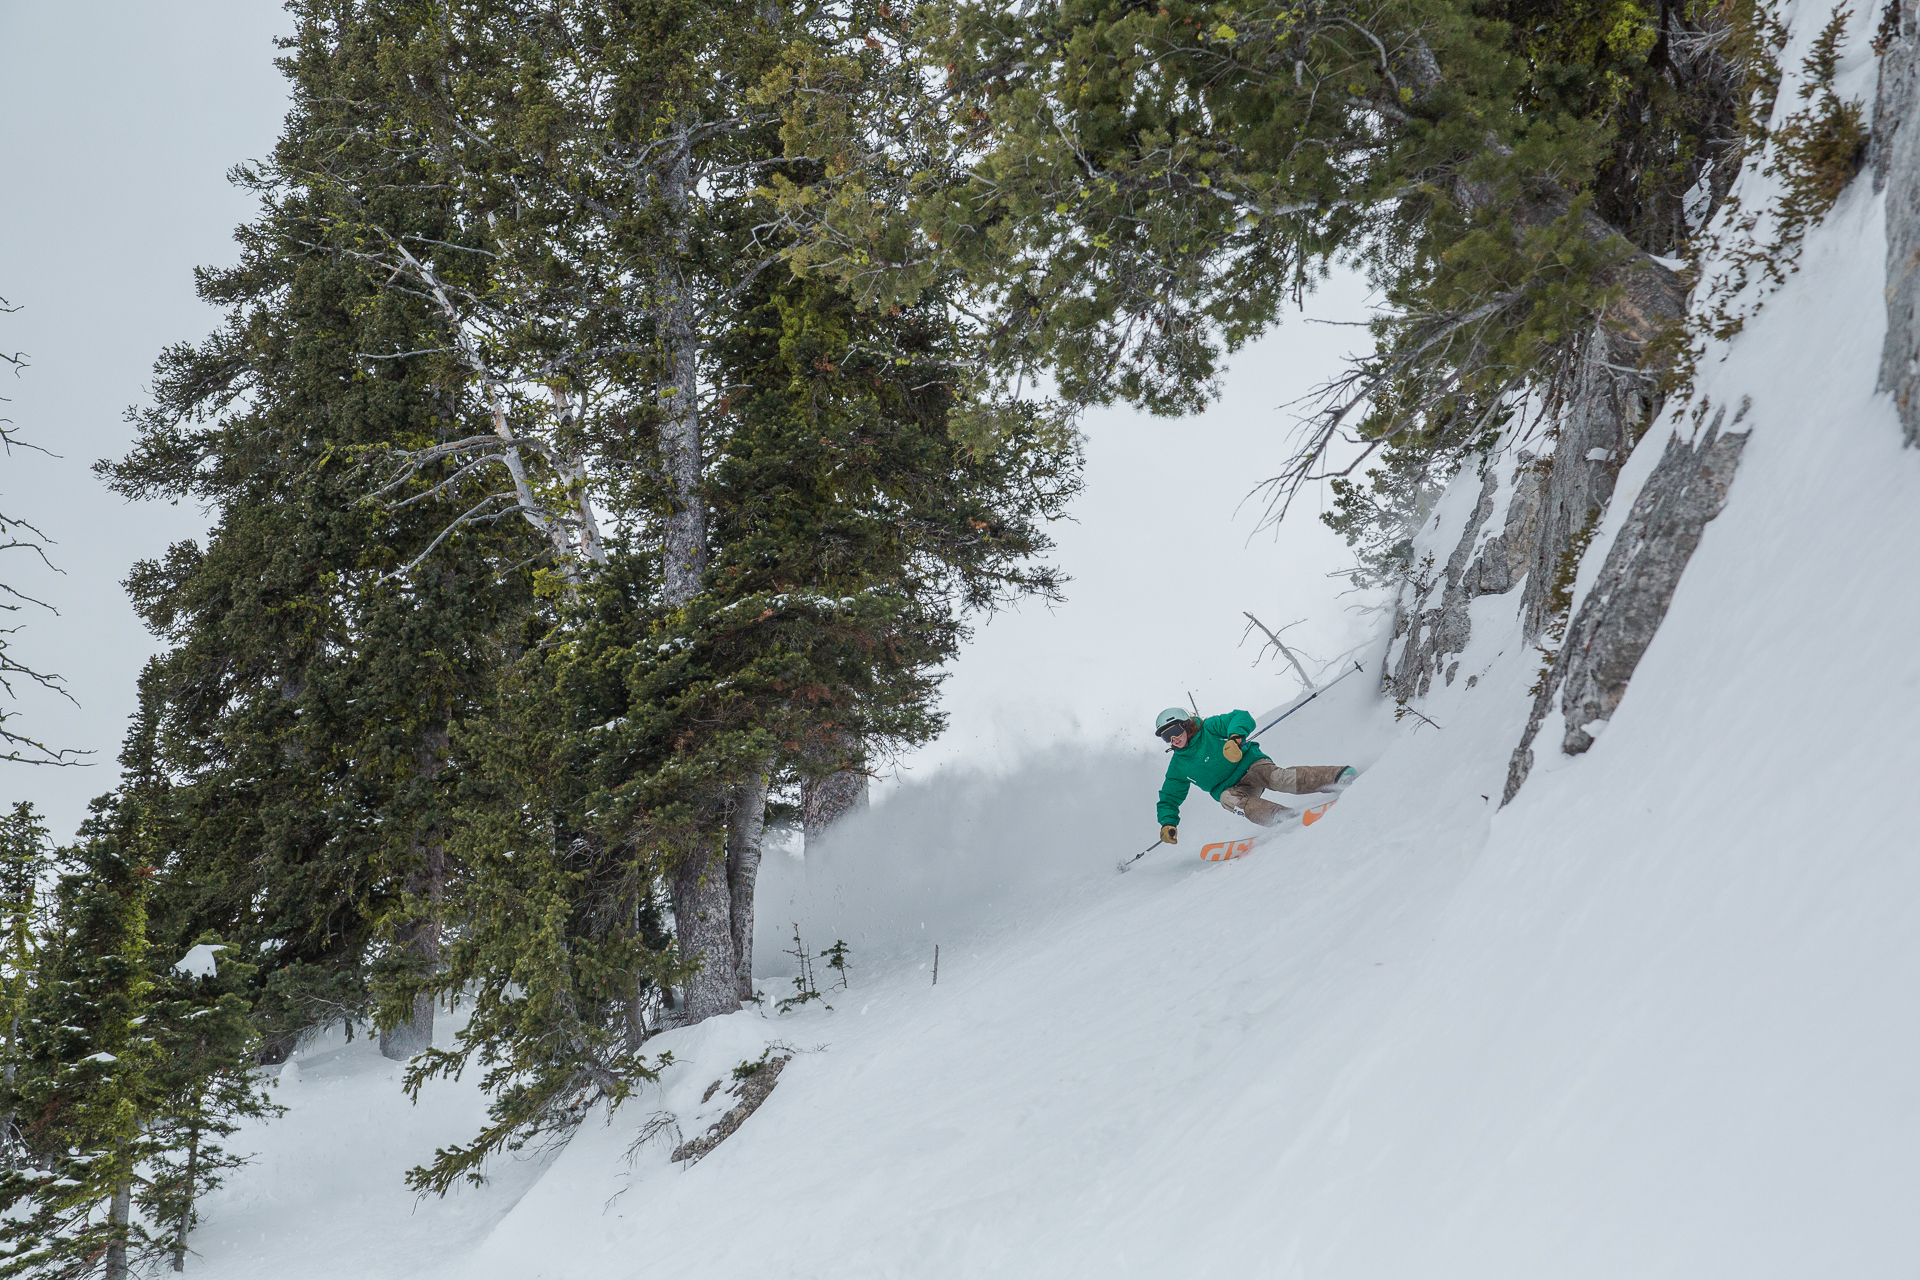 Mackenzie Lisac's competition strategy includes little planning, showing up late, shotgunning a beer before her run, and nearly winning the thing. PHOTO: Jason Thompson